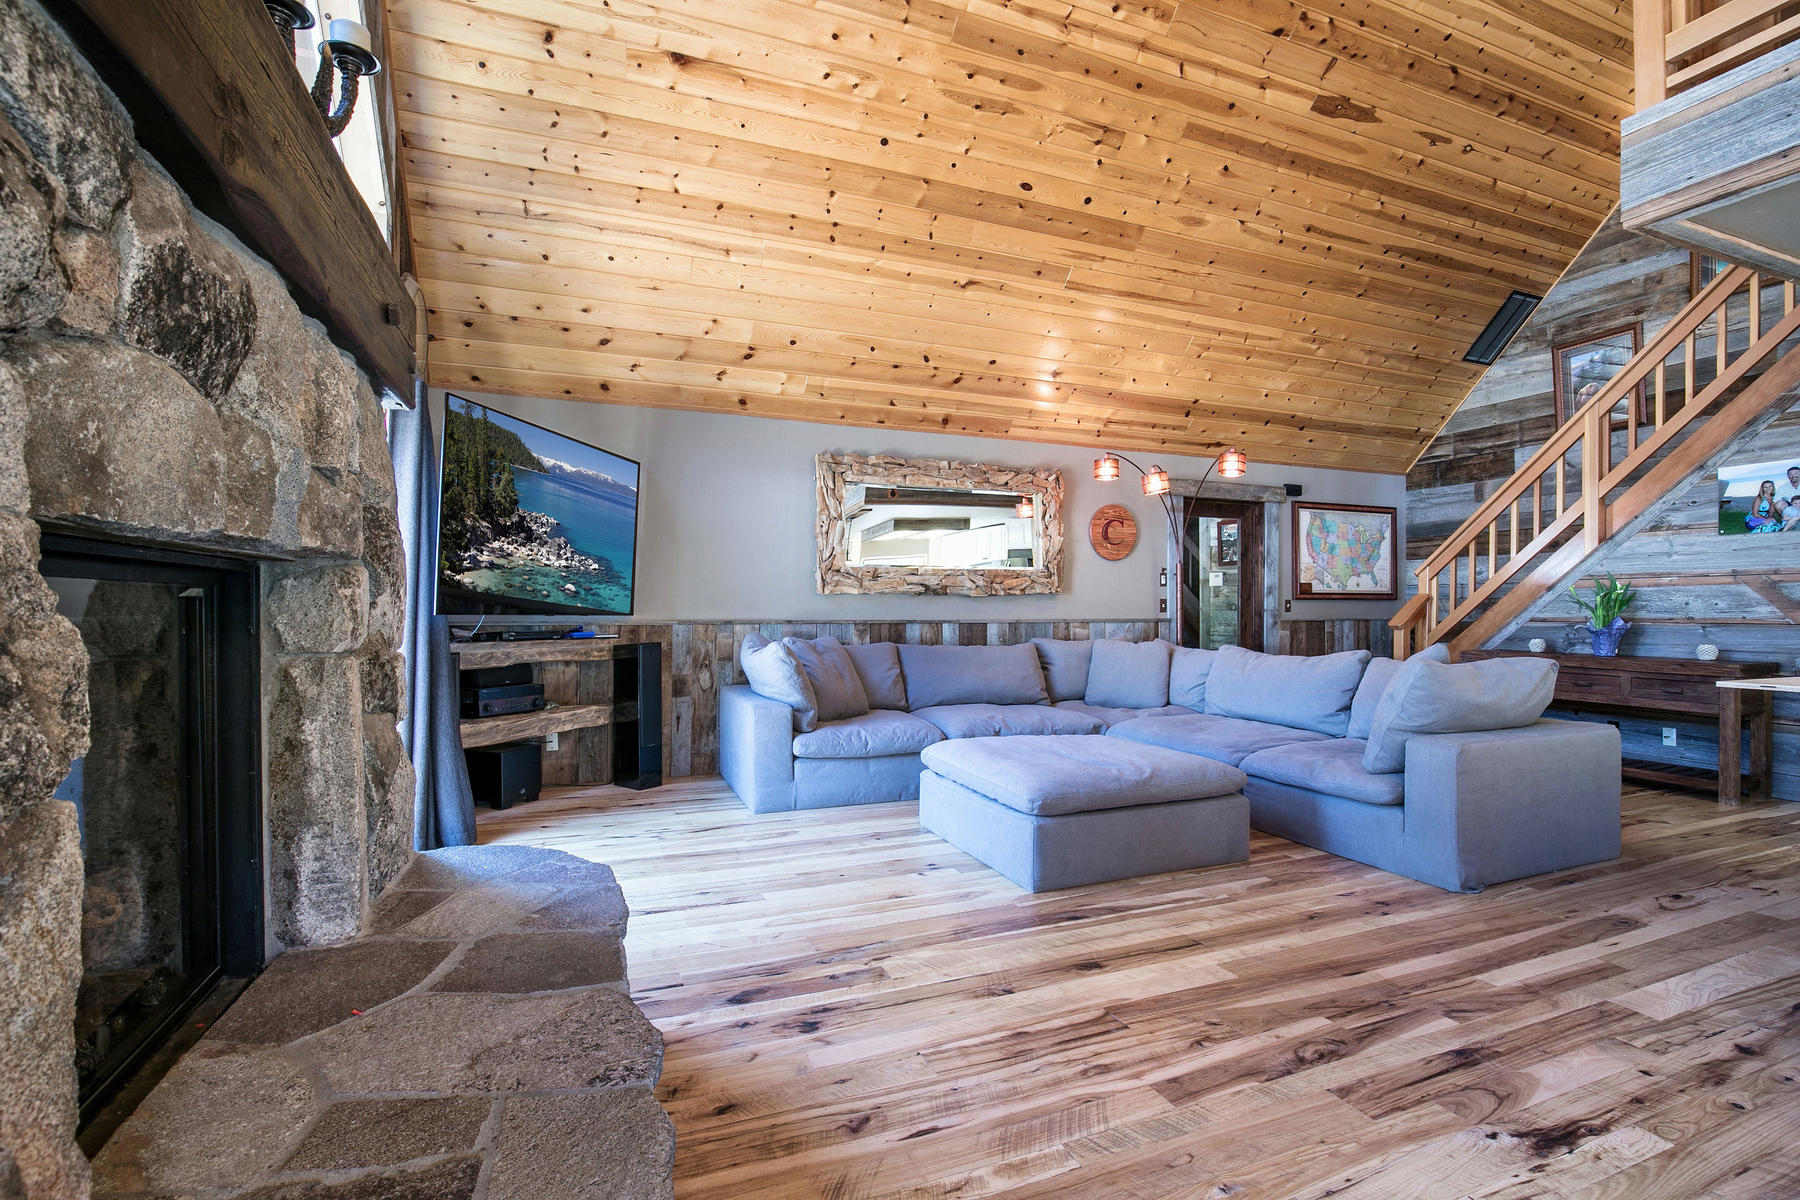 Additional photo for property listing at 13768 Copenhagen Drive, Truckee, CA 96161 13768 Copenhagen Drive Truckee, California 96161 United States